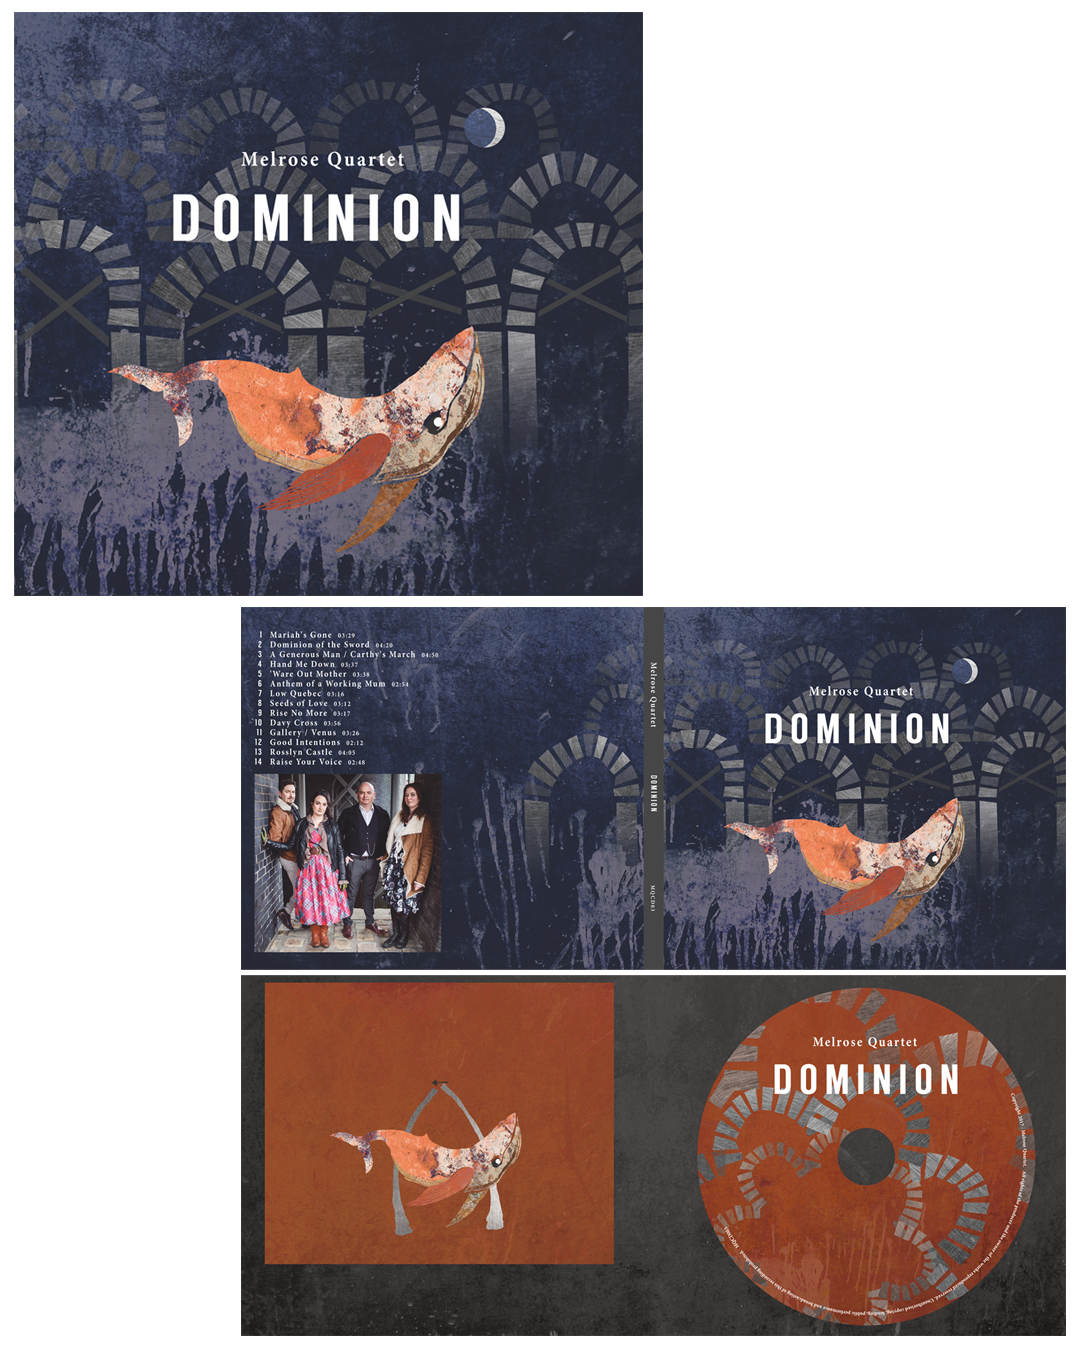 dominion by melrose quartet